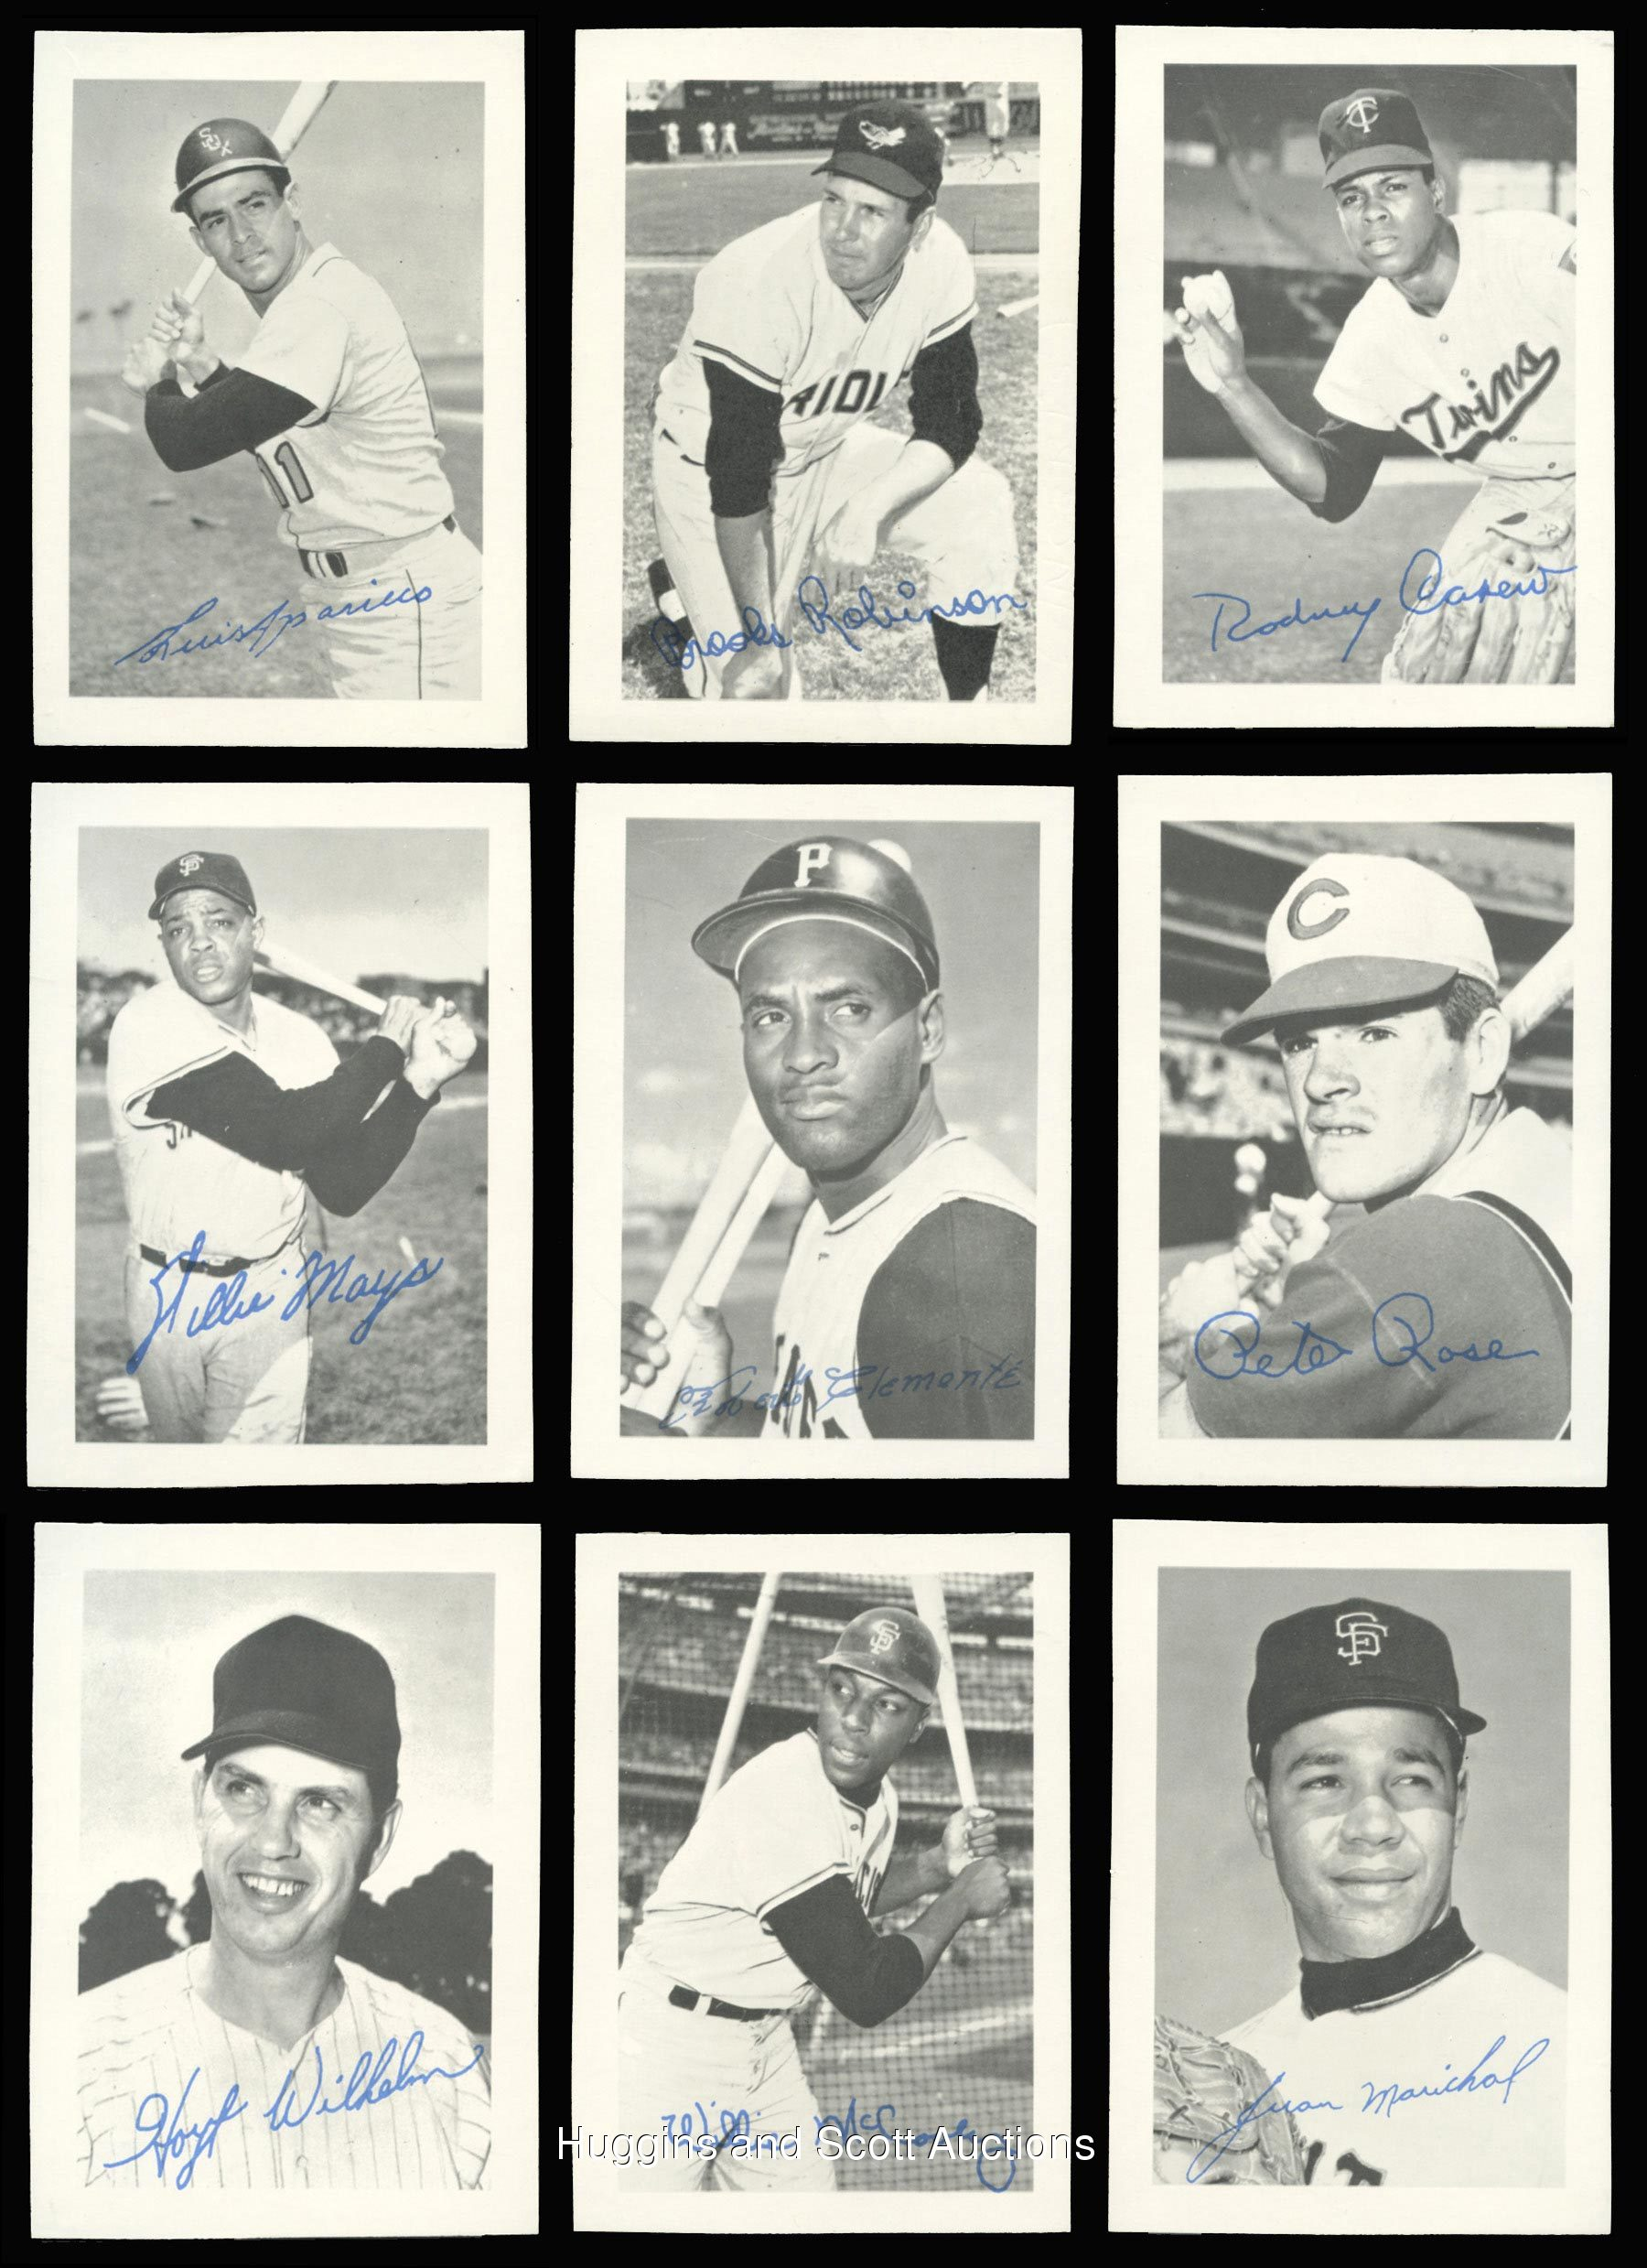 1969 Topps Deckle Edge Baseball Proof Near Set Of 3233 Cards